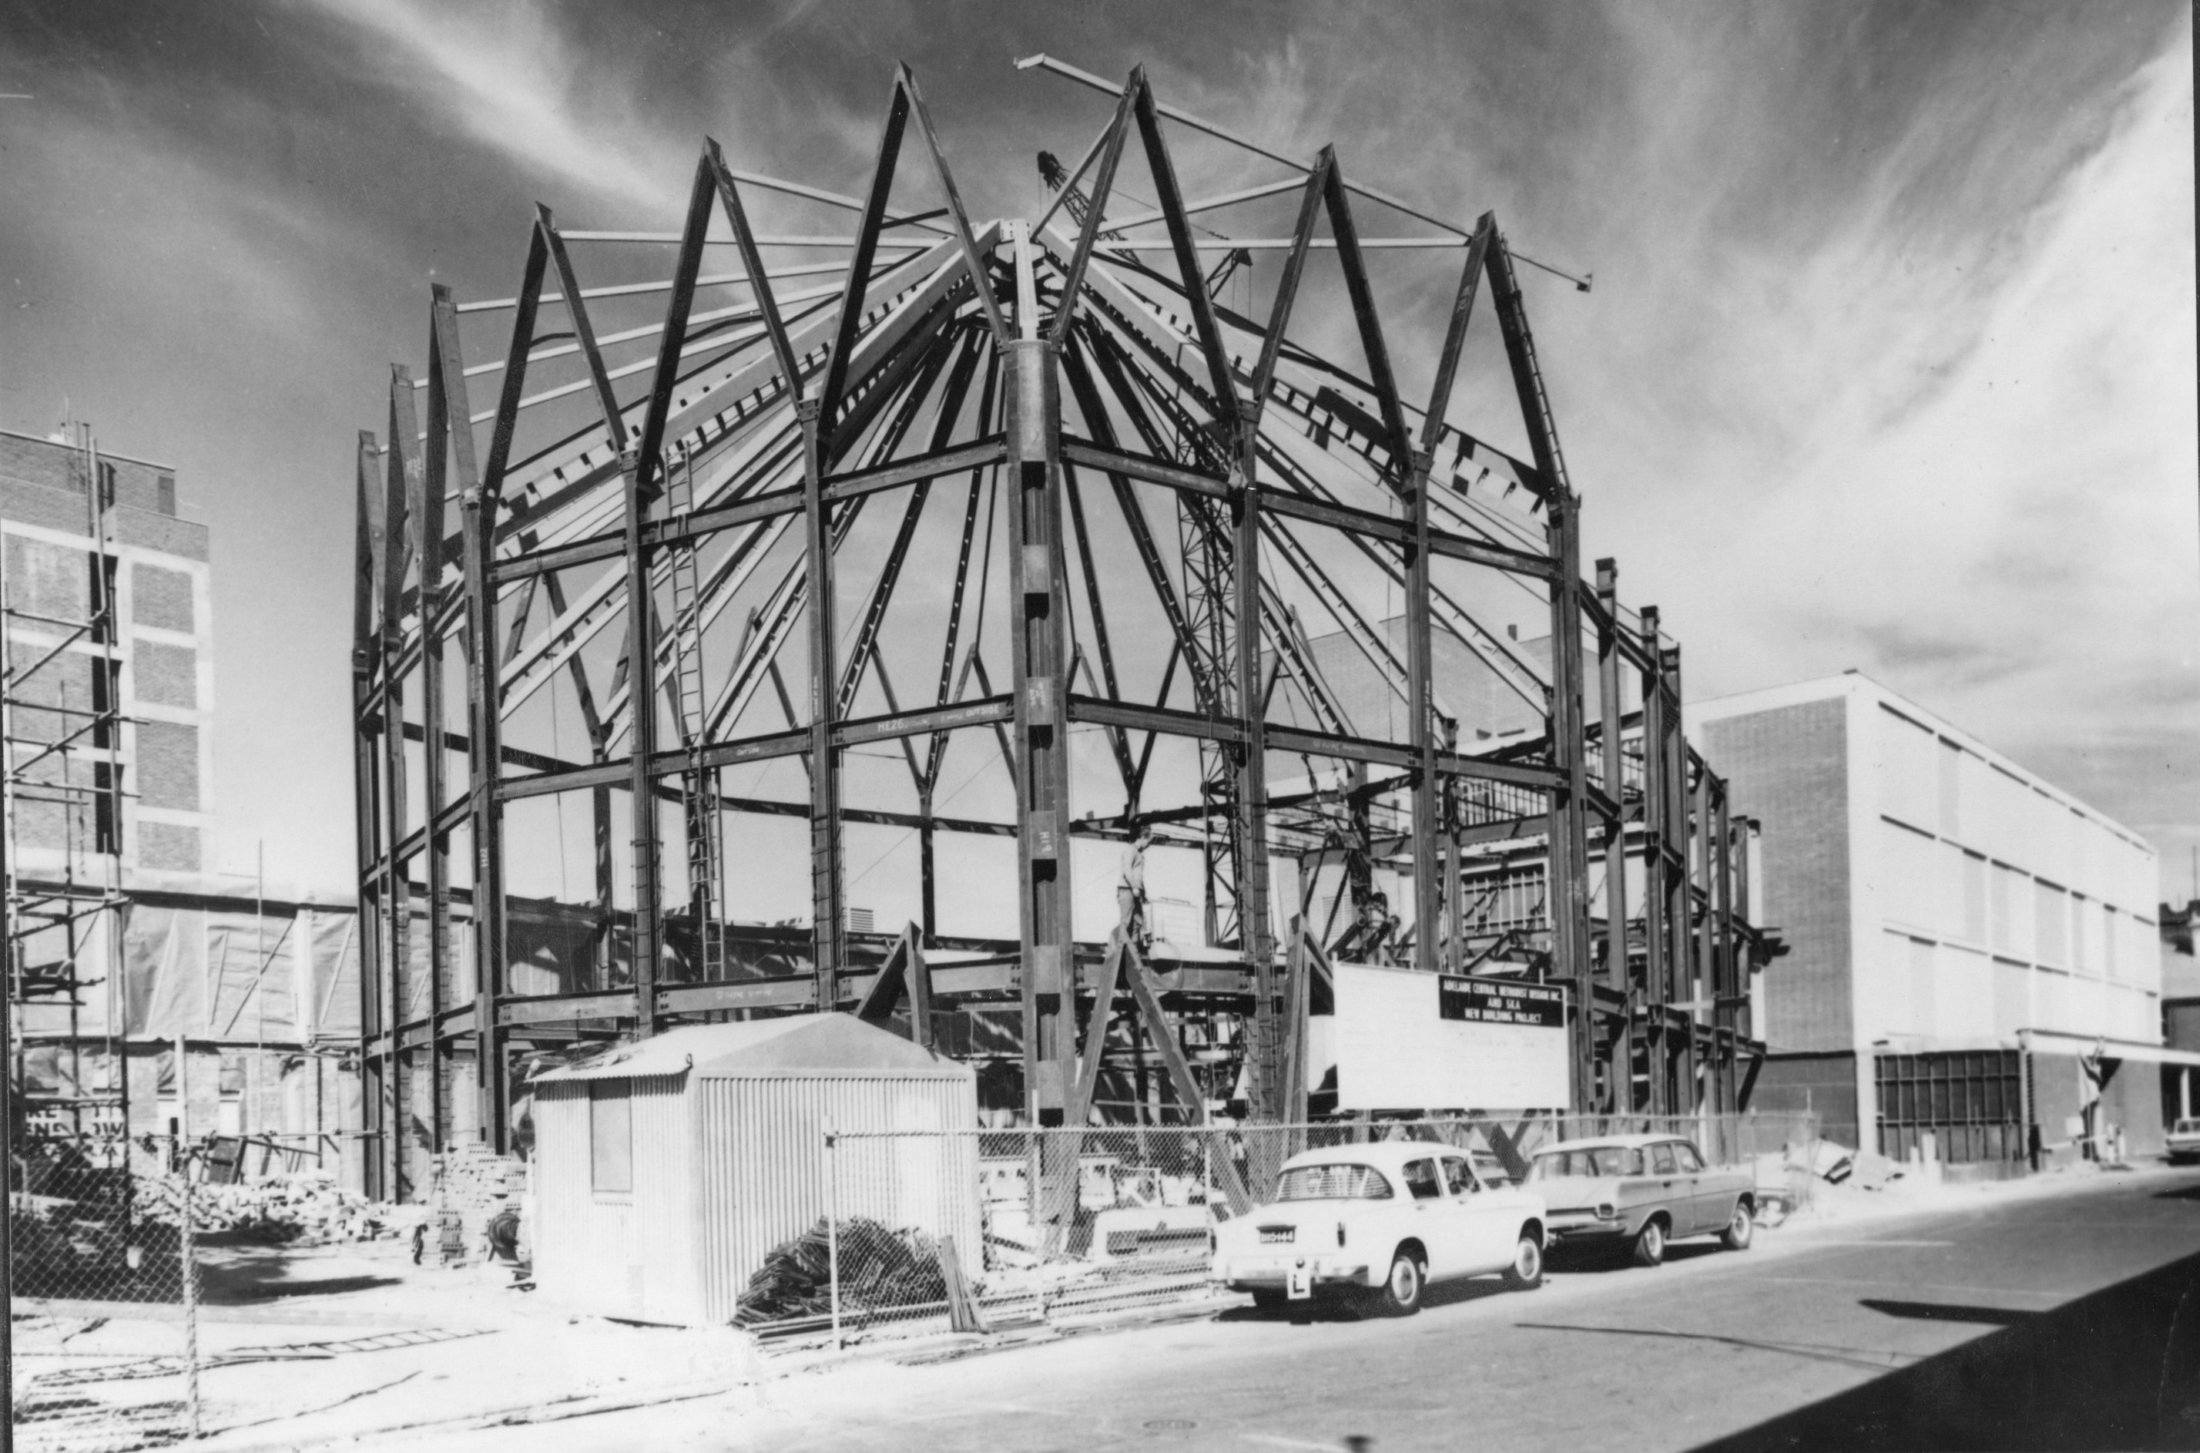 MaughanChurchNewConstruction1960s